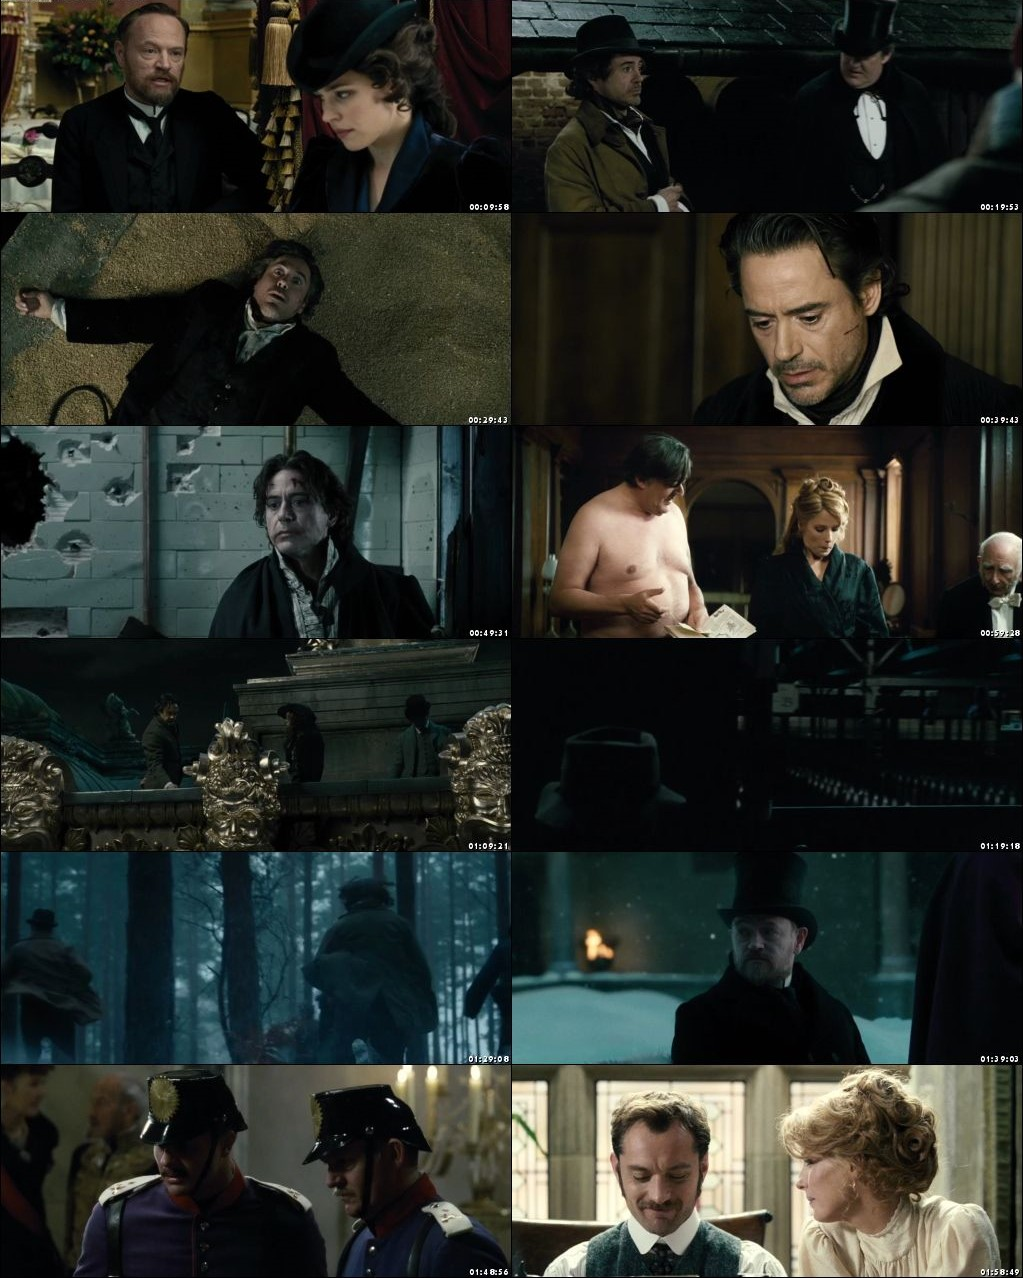 Sherlock Holmes: A Game of Shadows 2011 Full Movie Online Watch